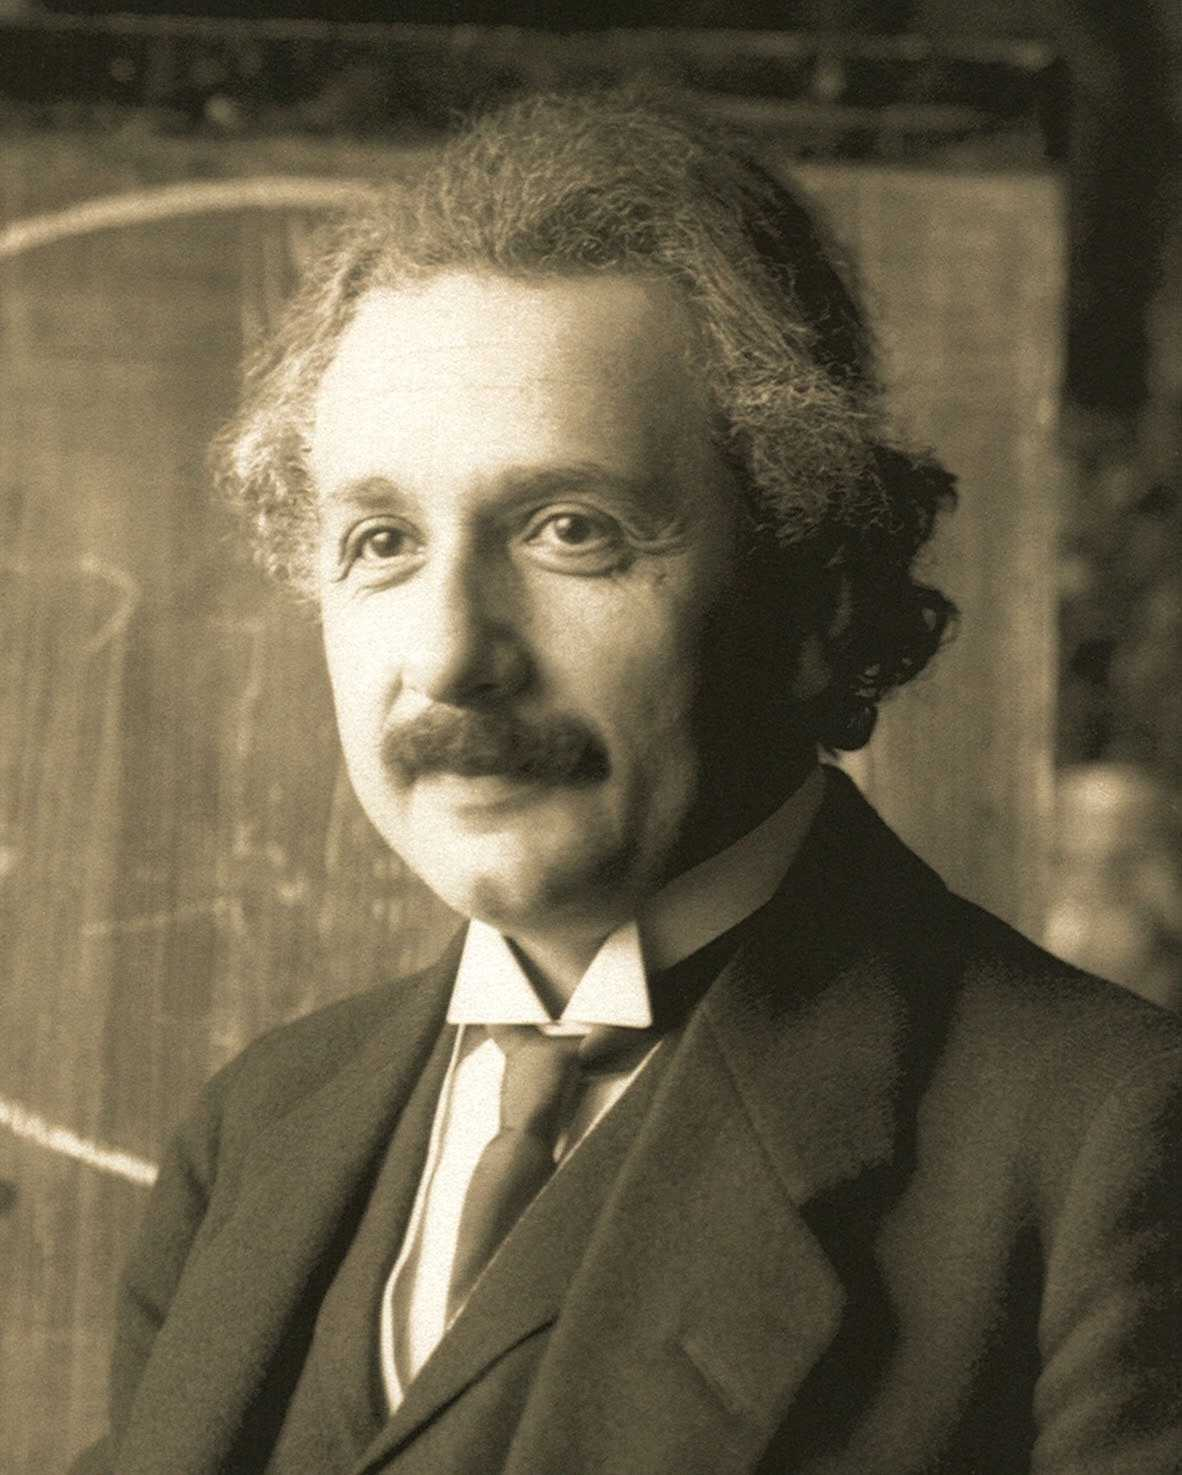 Albert Einstein's death